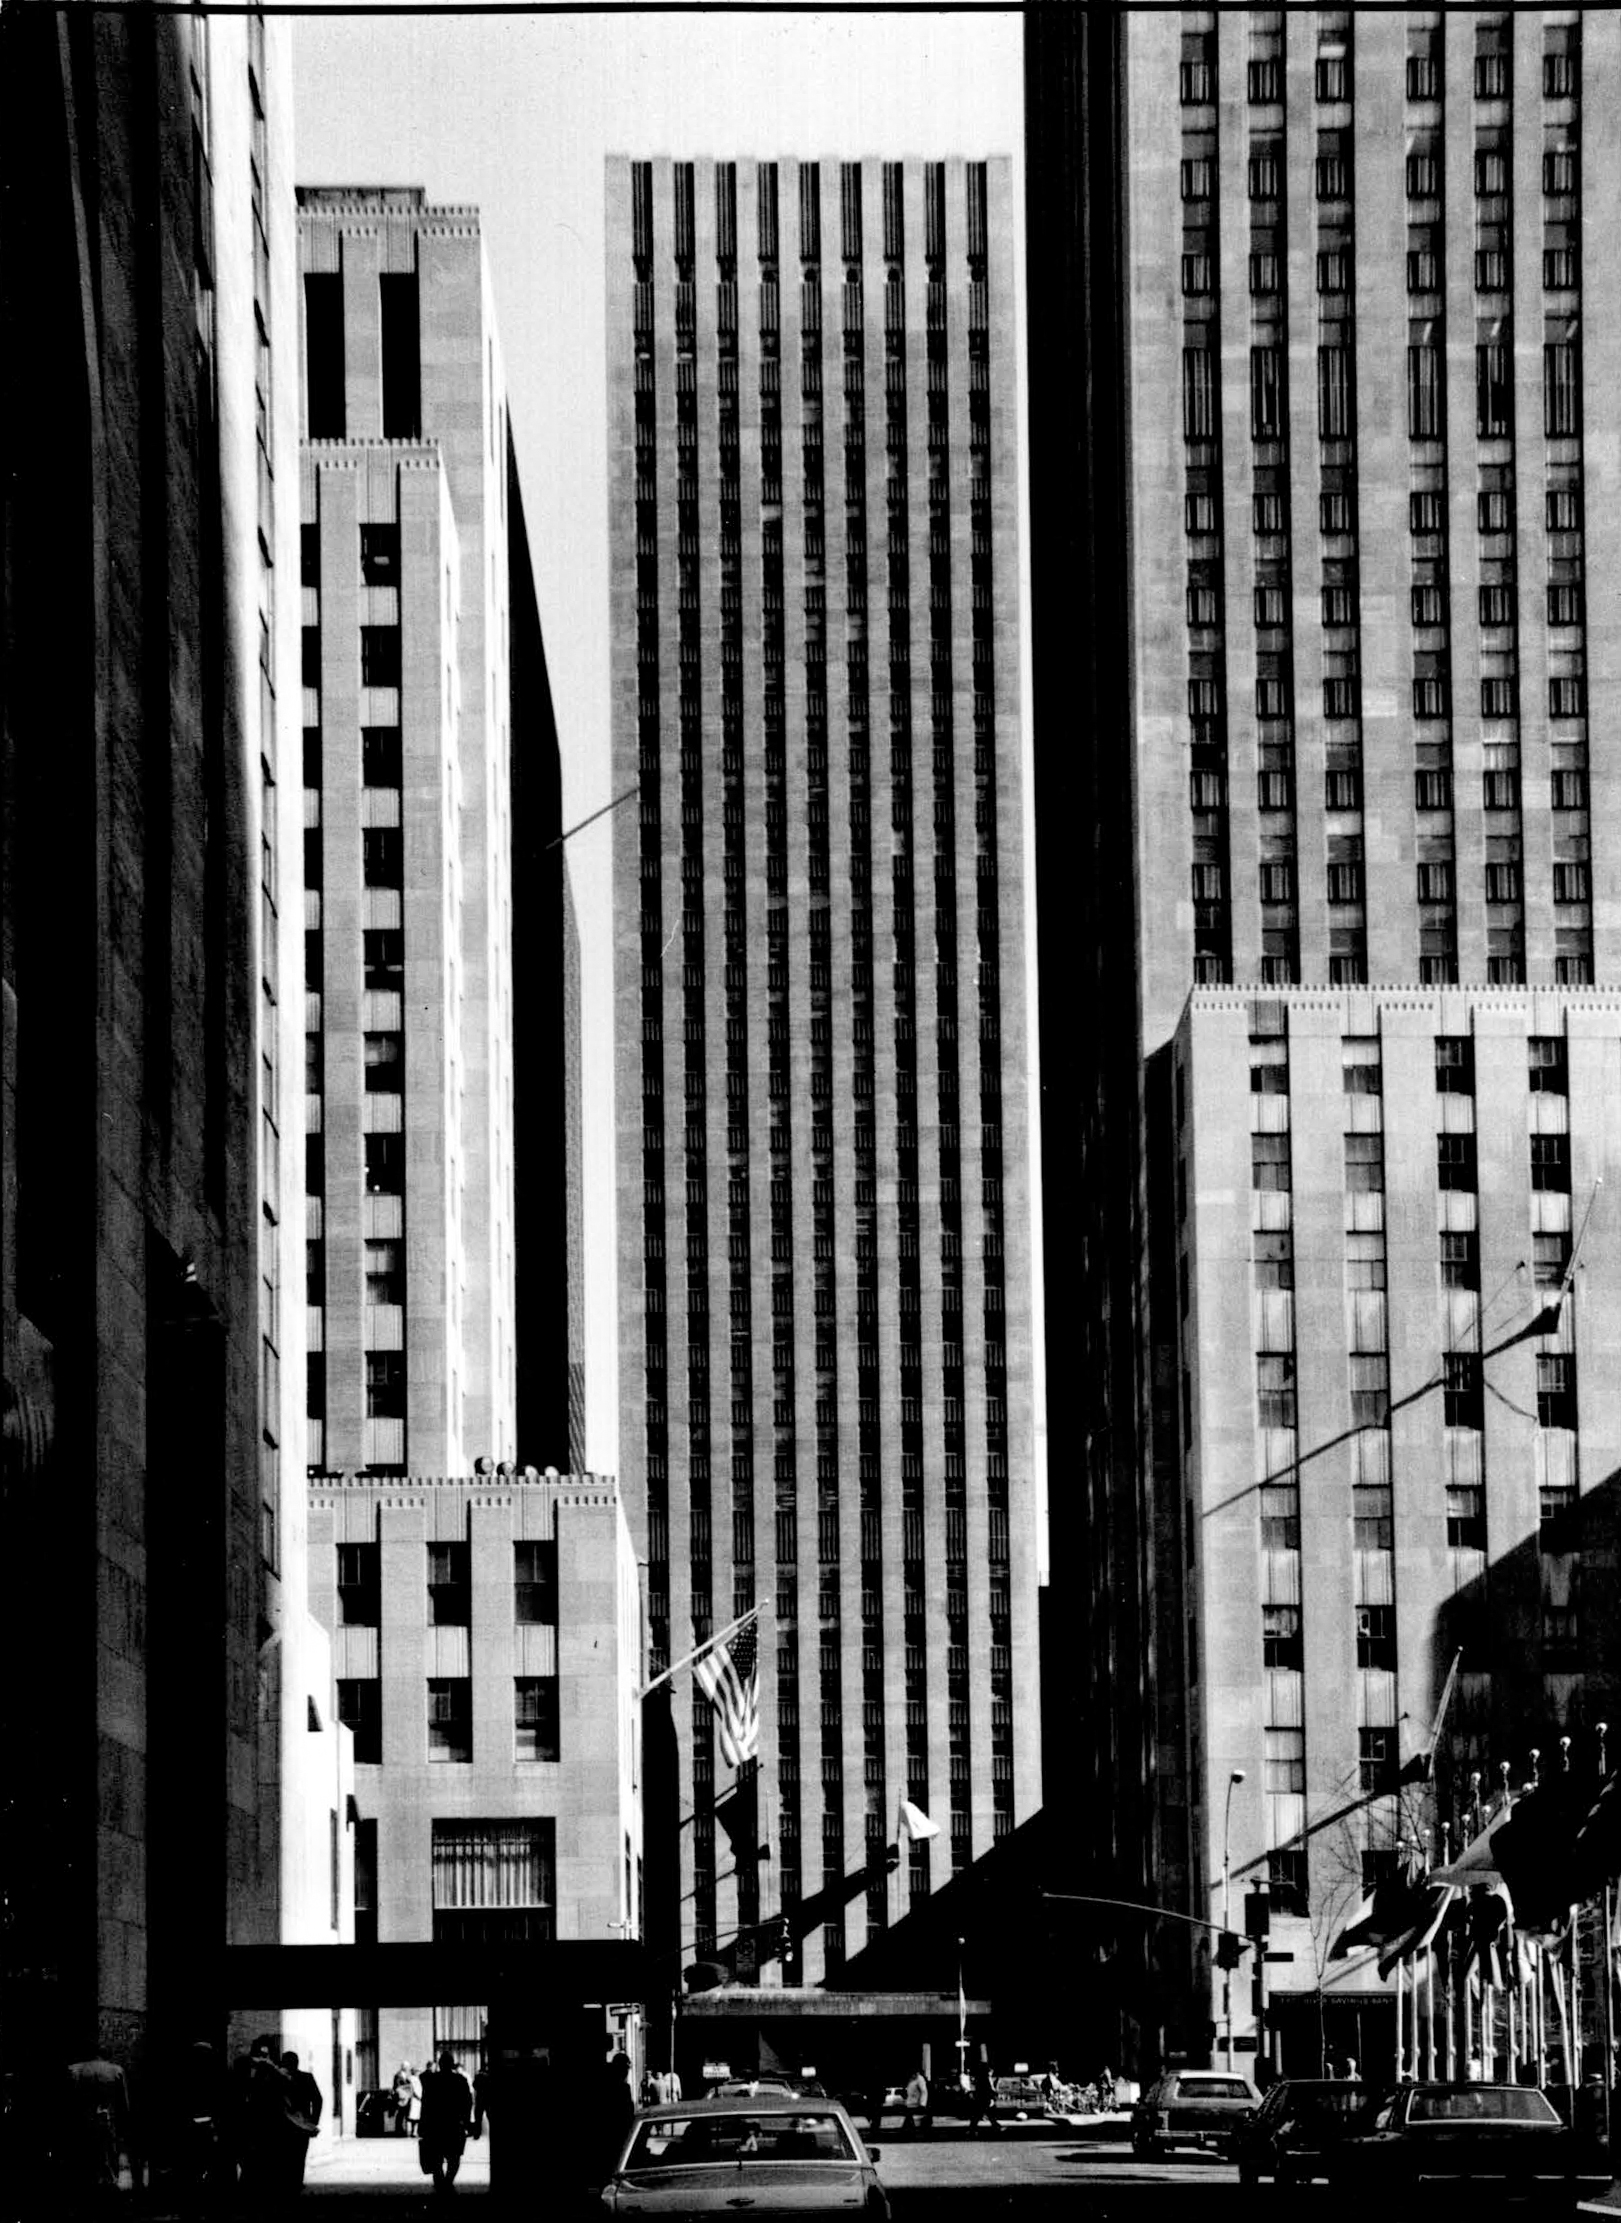 Archival Photo Of 75 Rockefeller Plaza Credit LPC